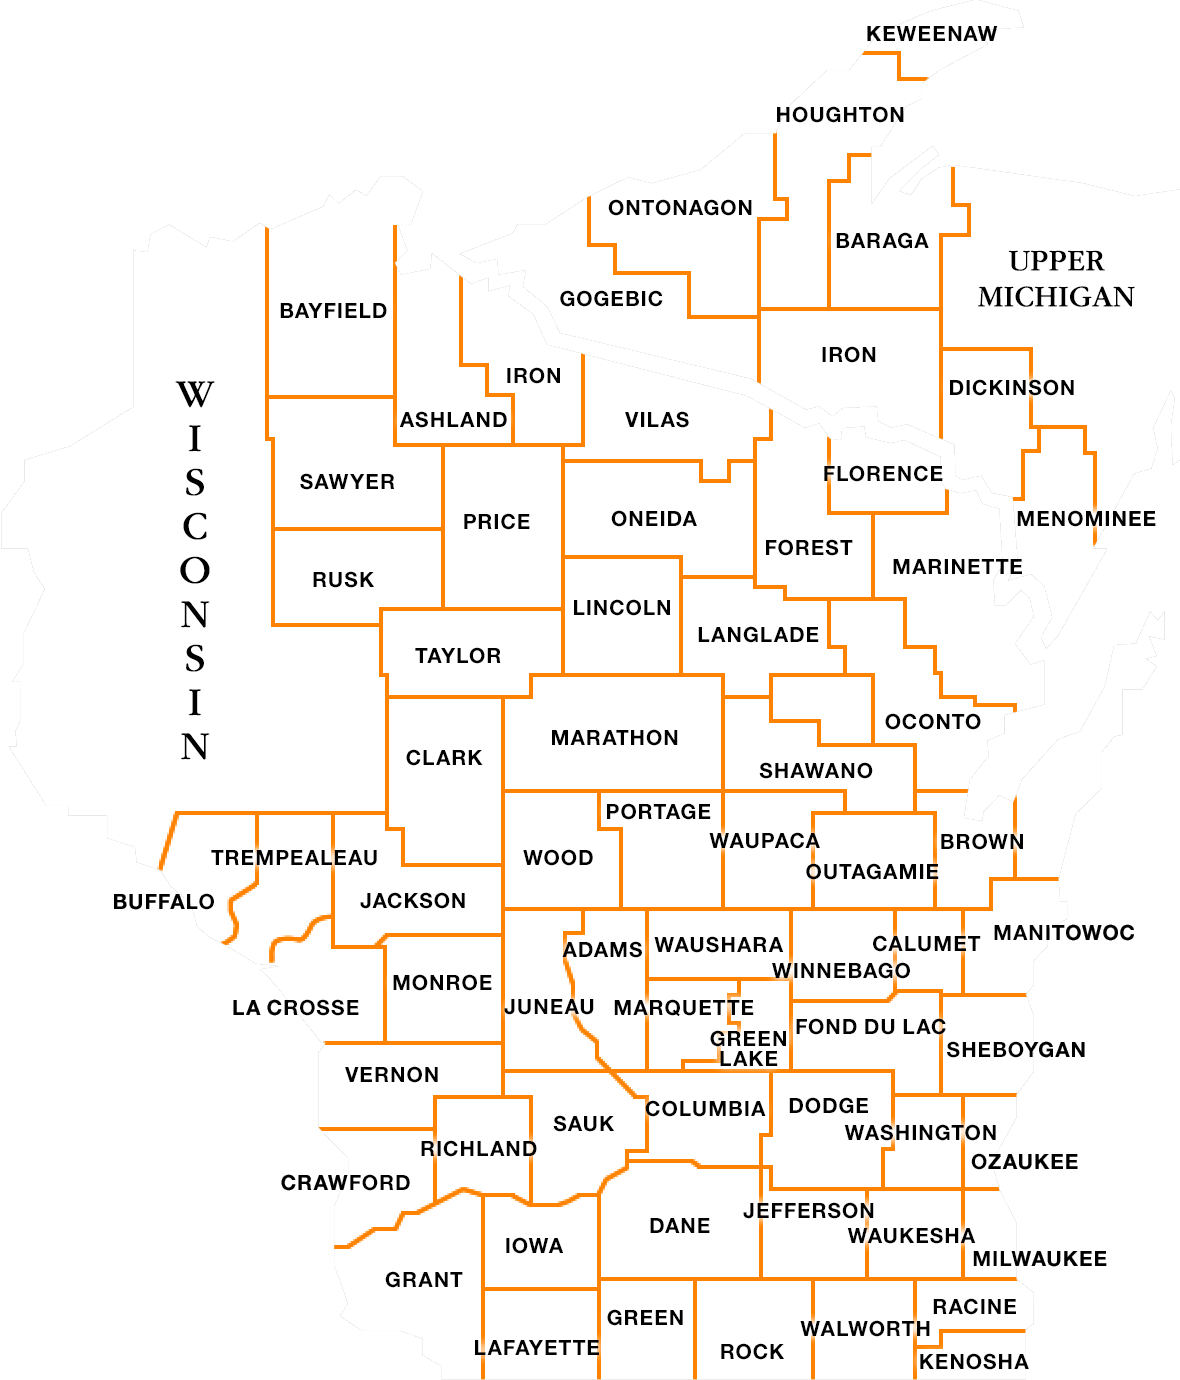 Clickable map of all counties